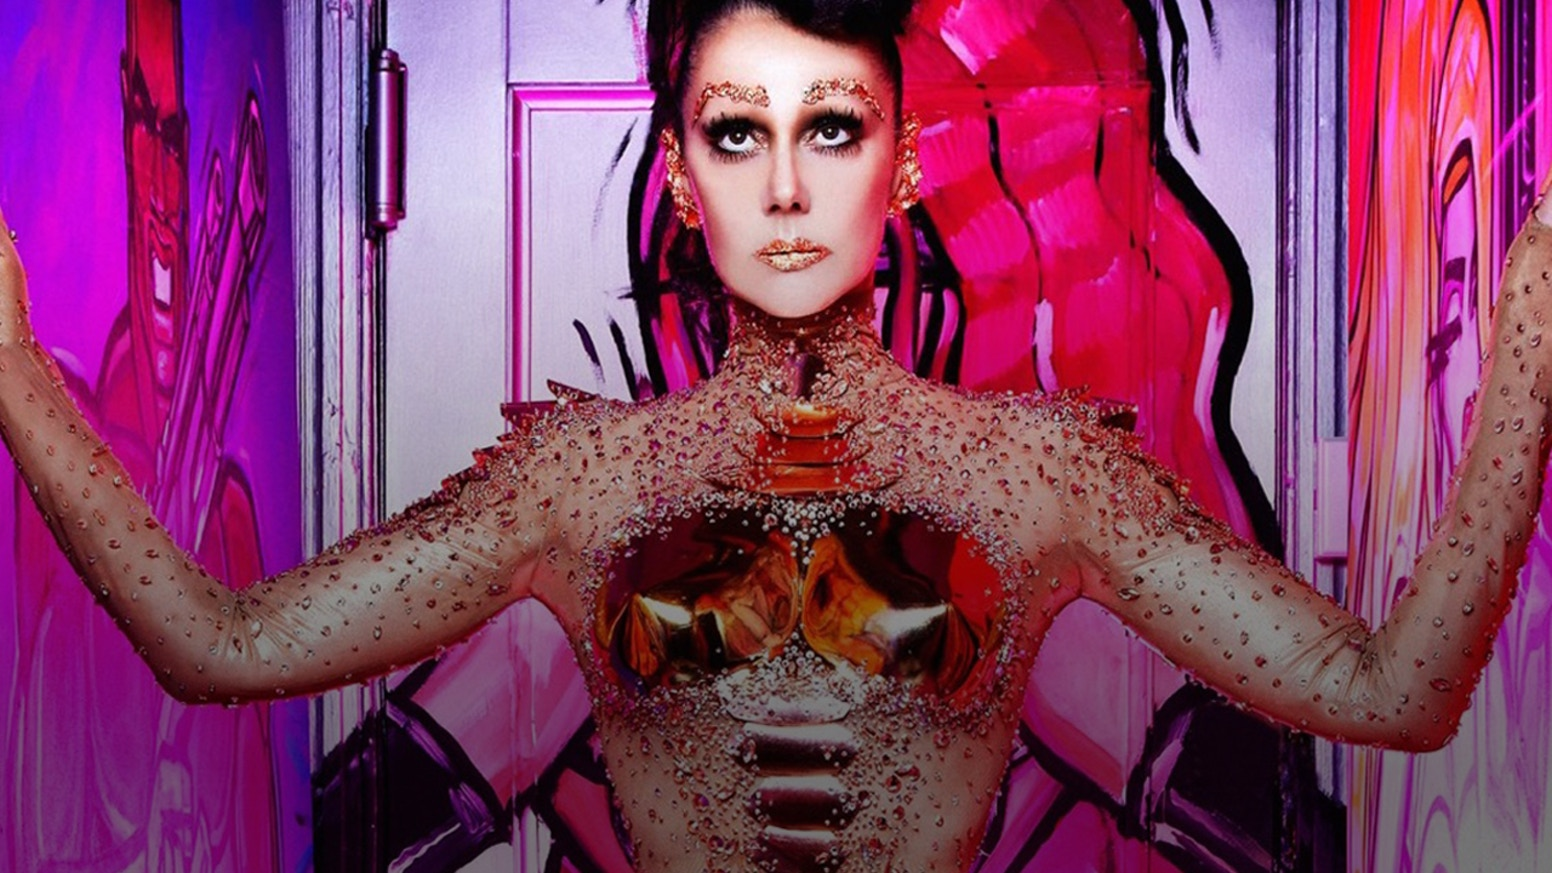 One of a kind documentary about Susanne Bartsch: the Queen of Nightlife and a New York City icon.